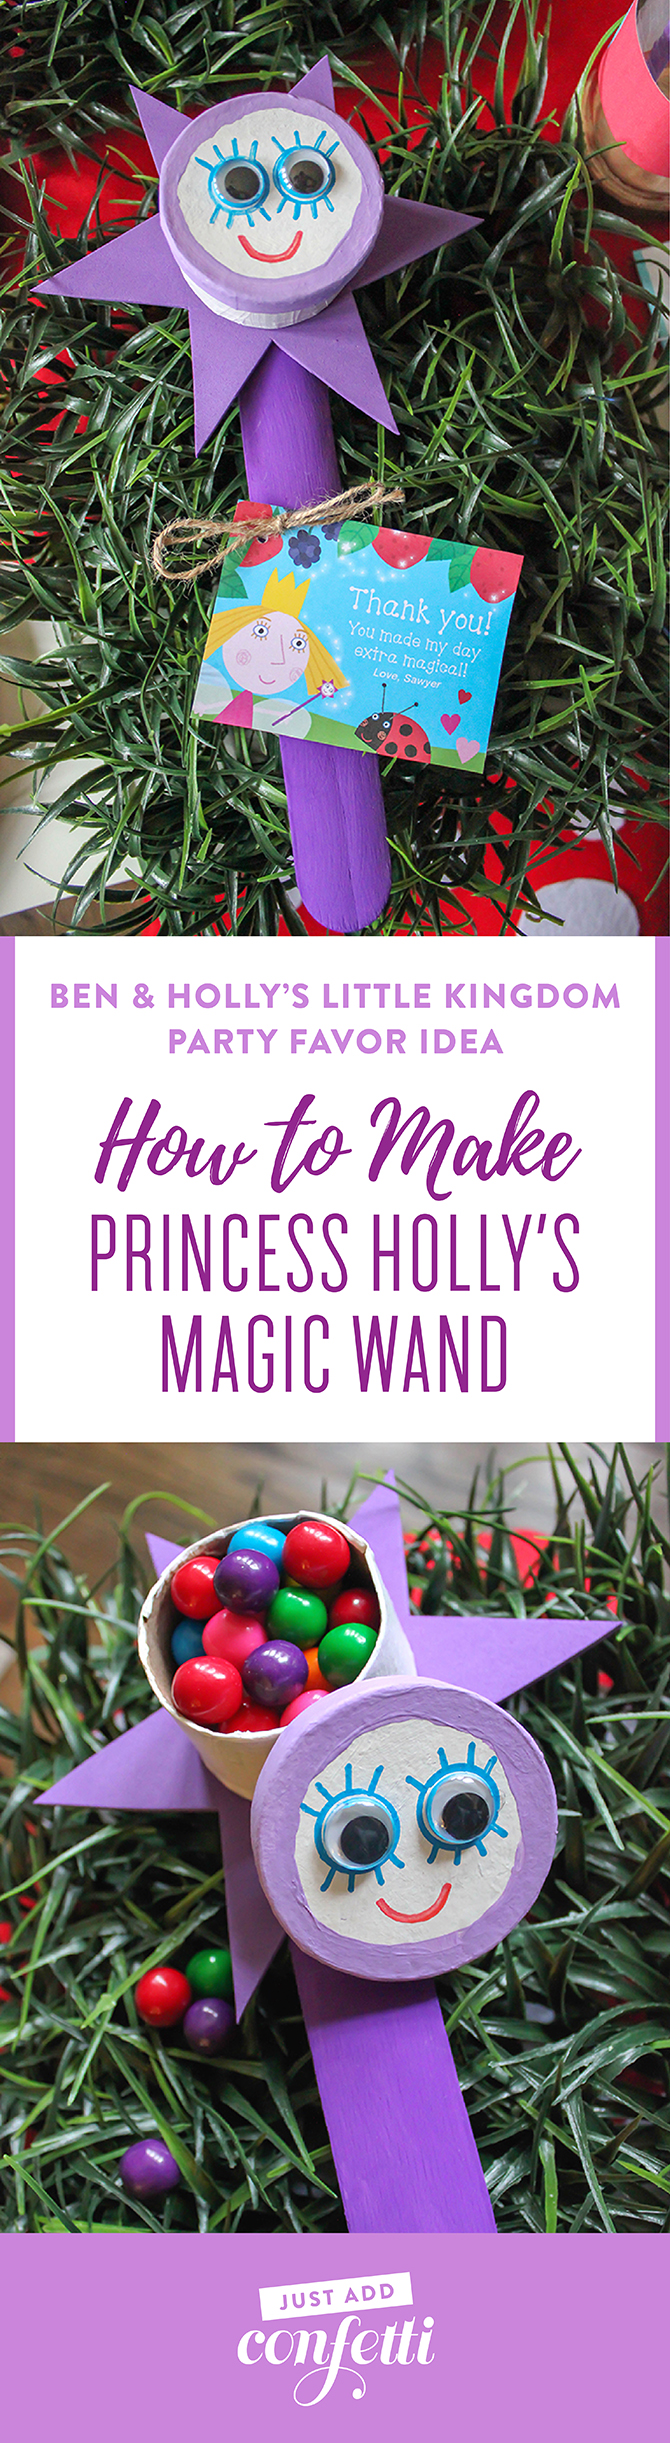 Ben & Holly's Little Kingdom party, Ben & Holly's Little Kingdom party favor idea, Princess Holly's Magic Wand party favor, DIY Princess Holly's magic wand, DIY magic wand party favor, princess wand party favor, Just Add Confetti, partnership, Ben & Holly's Little Kingdom, Princess Holly's magic wand, magic wand party favor,